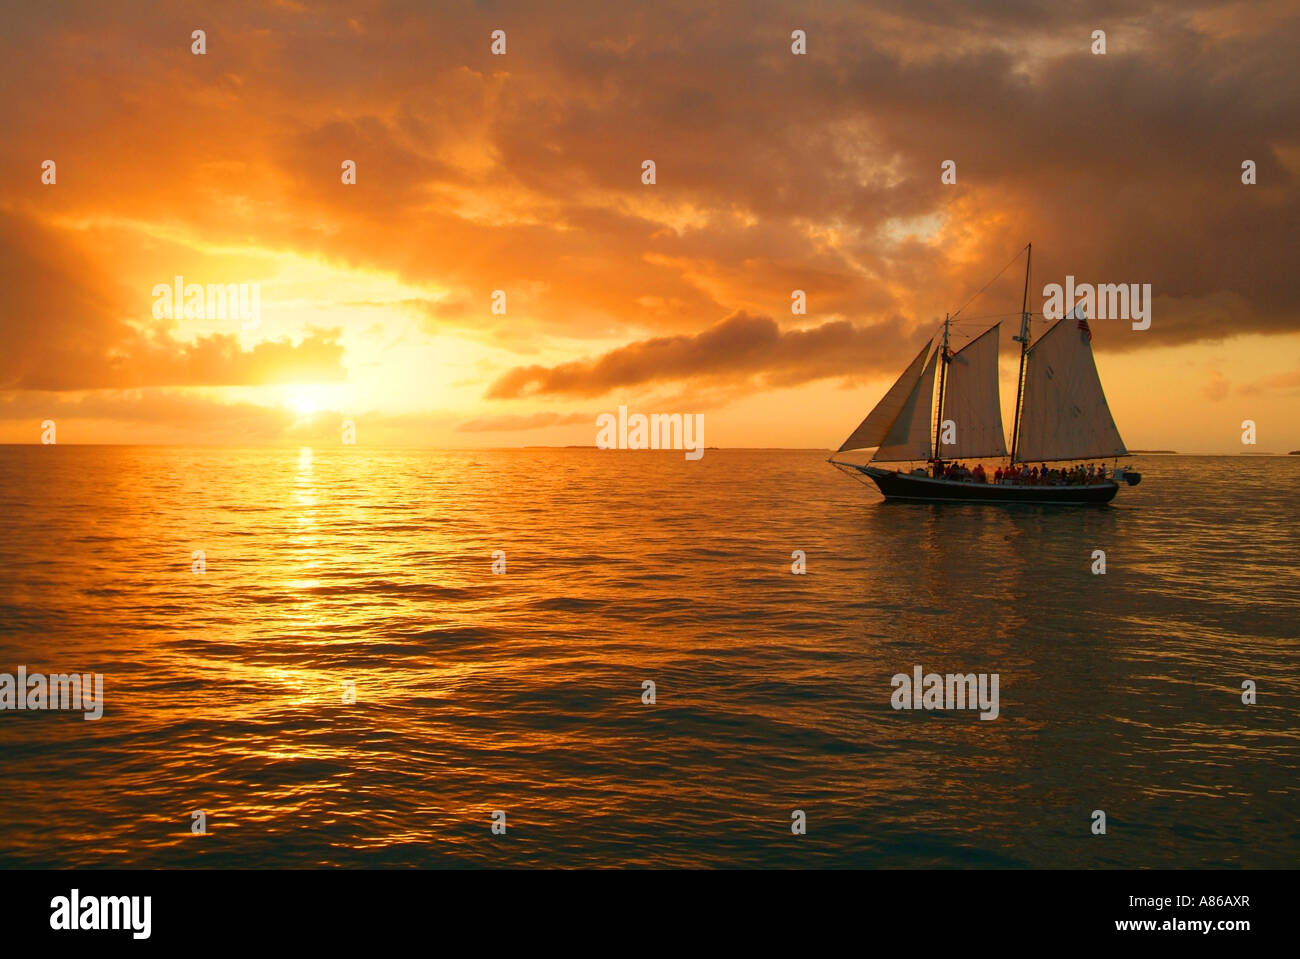 usa-florida-key-west-schooner-at-sunset-